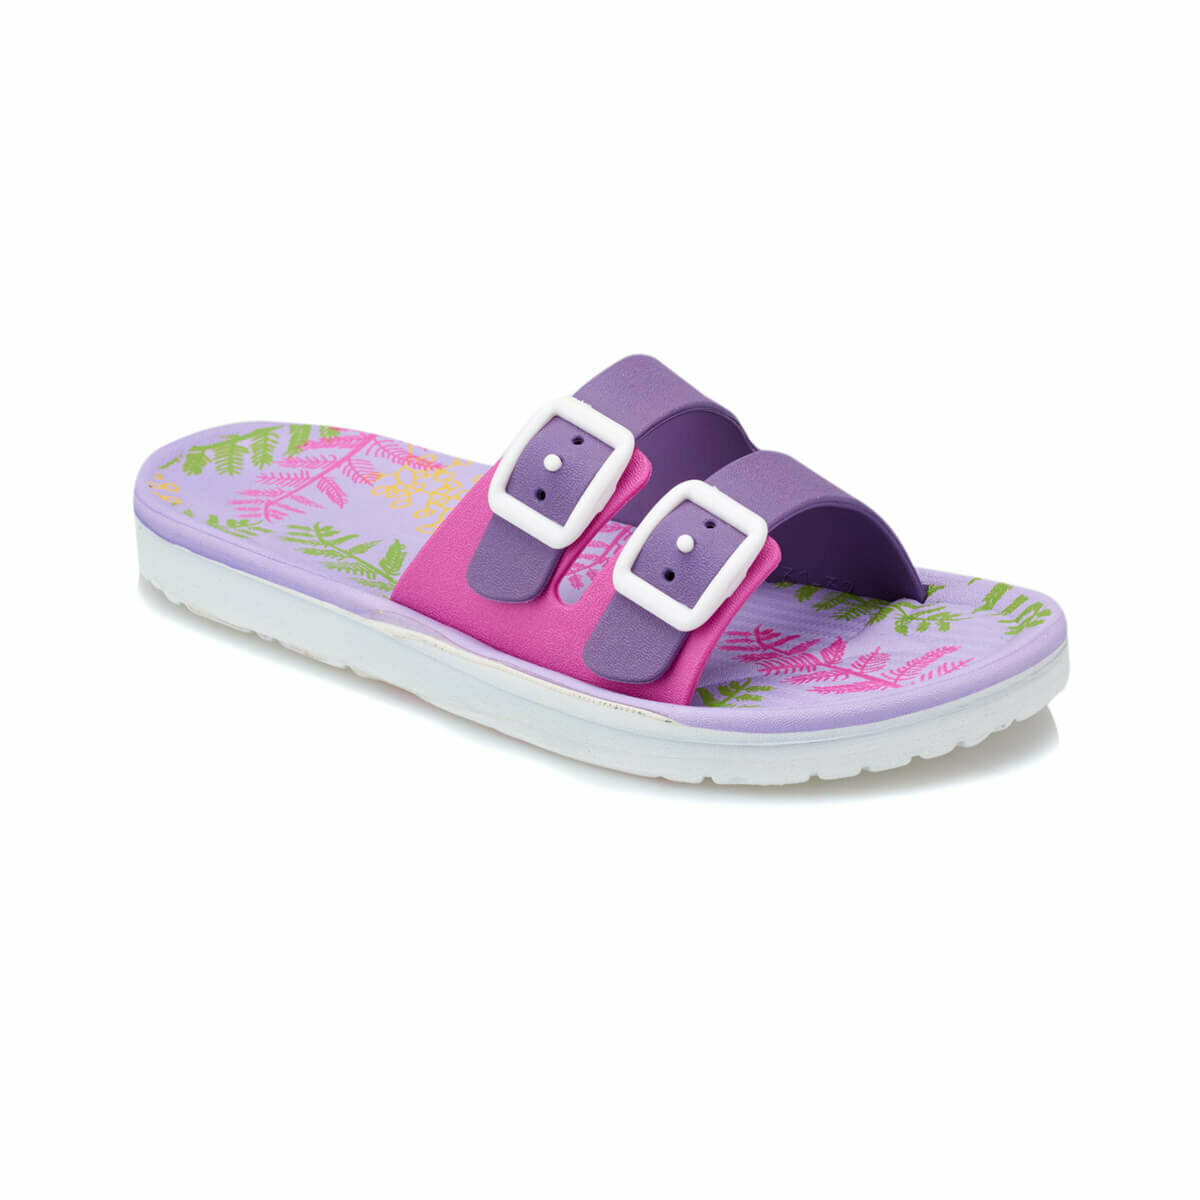 FLO TERTIN Purple Female Child Slippers KINETIX